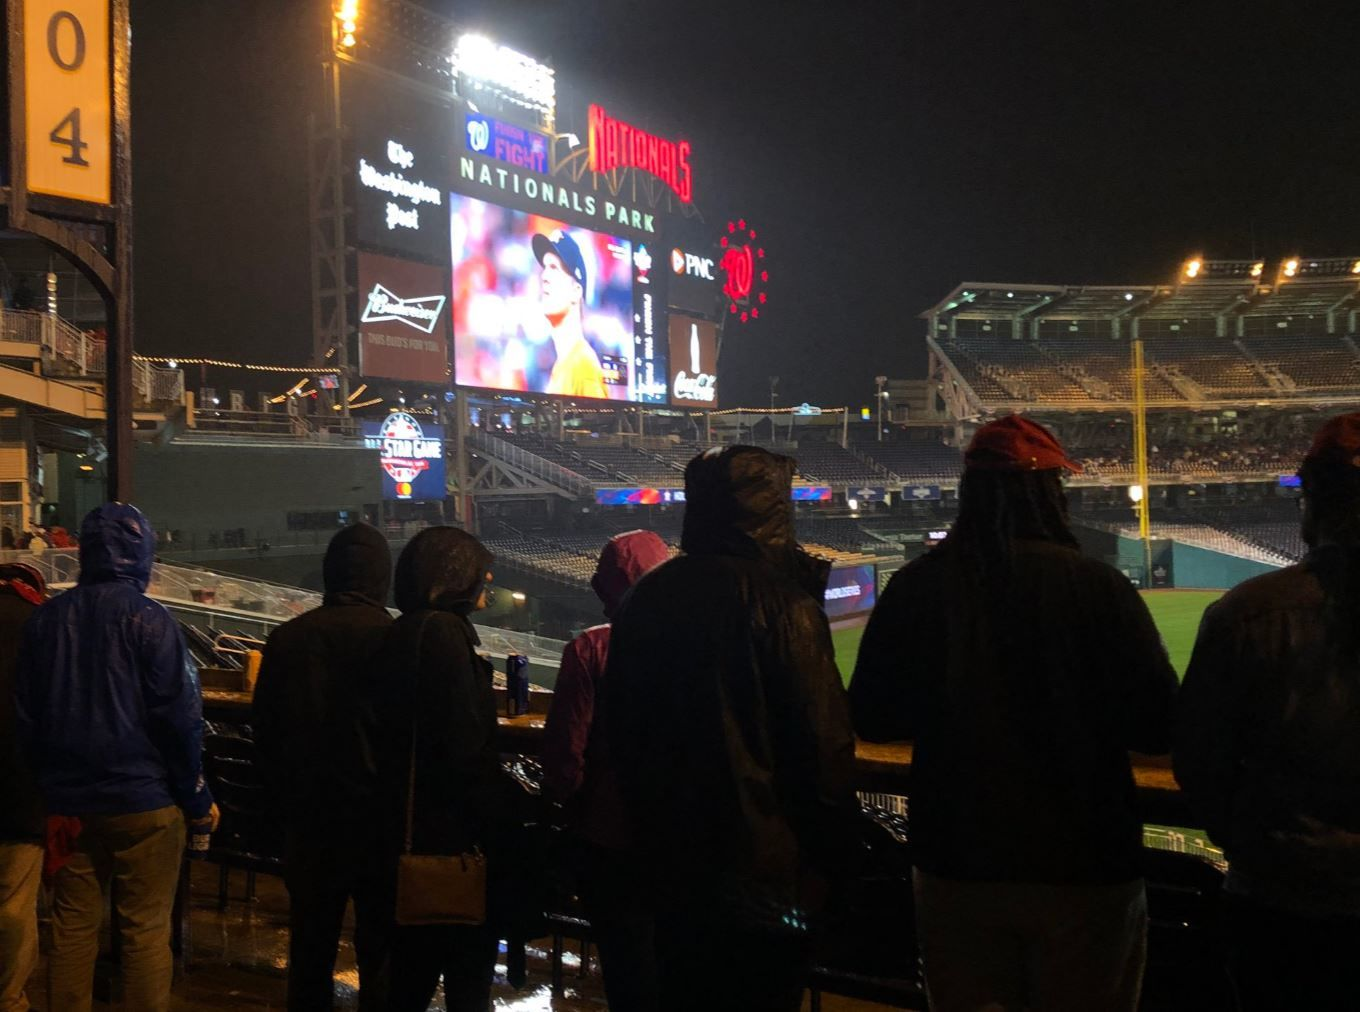 nats watch, game 7, world series, nats park